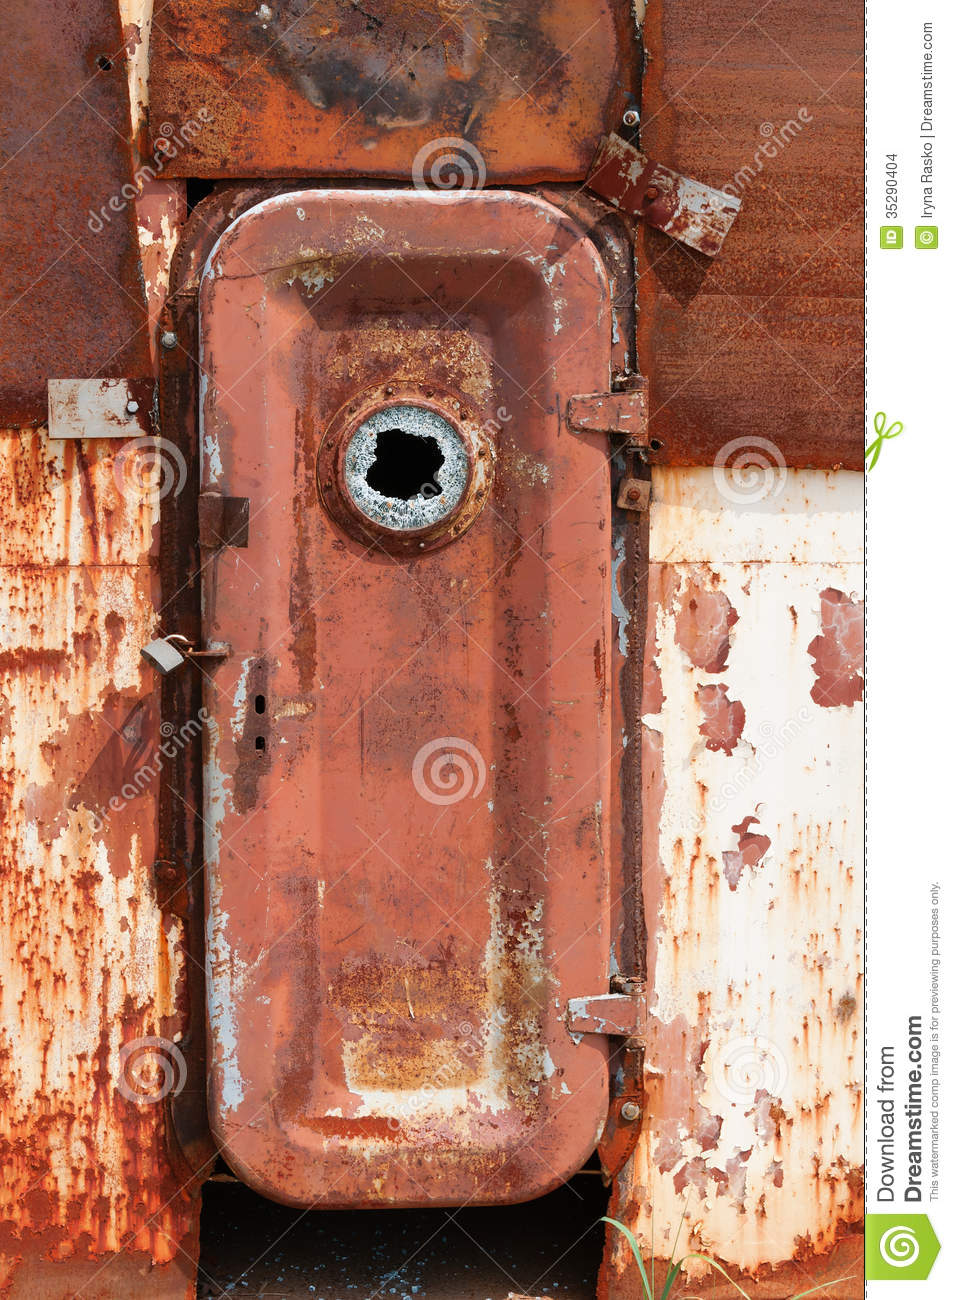 Rusty Door rusty door on wrecked abandoned ship stock images - image: 35290404